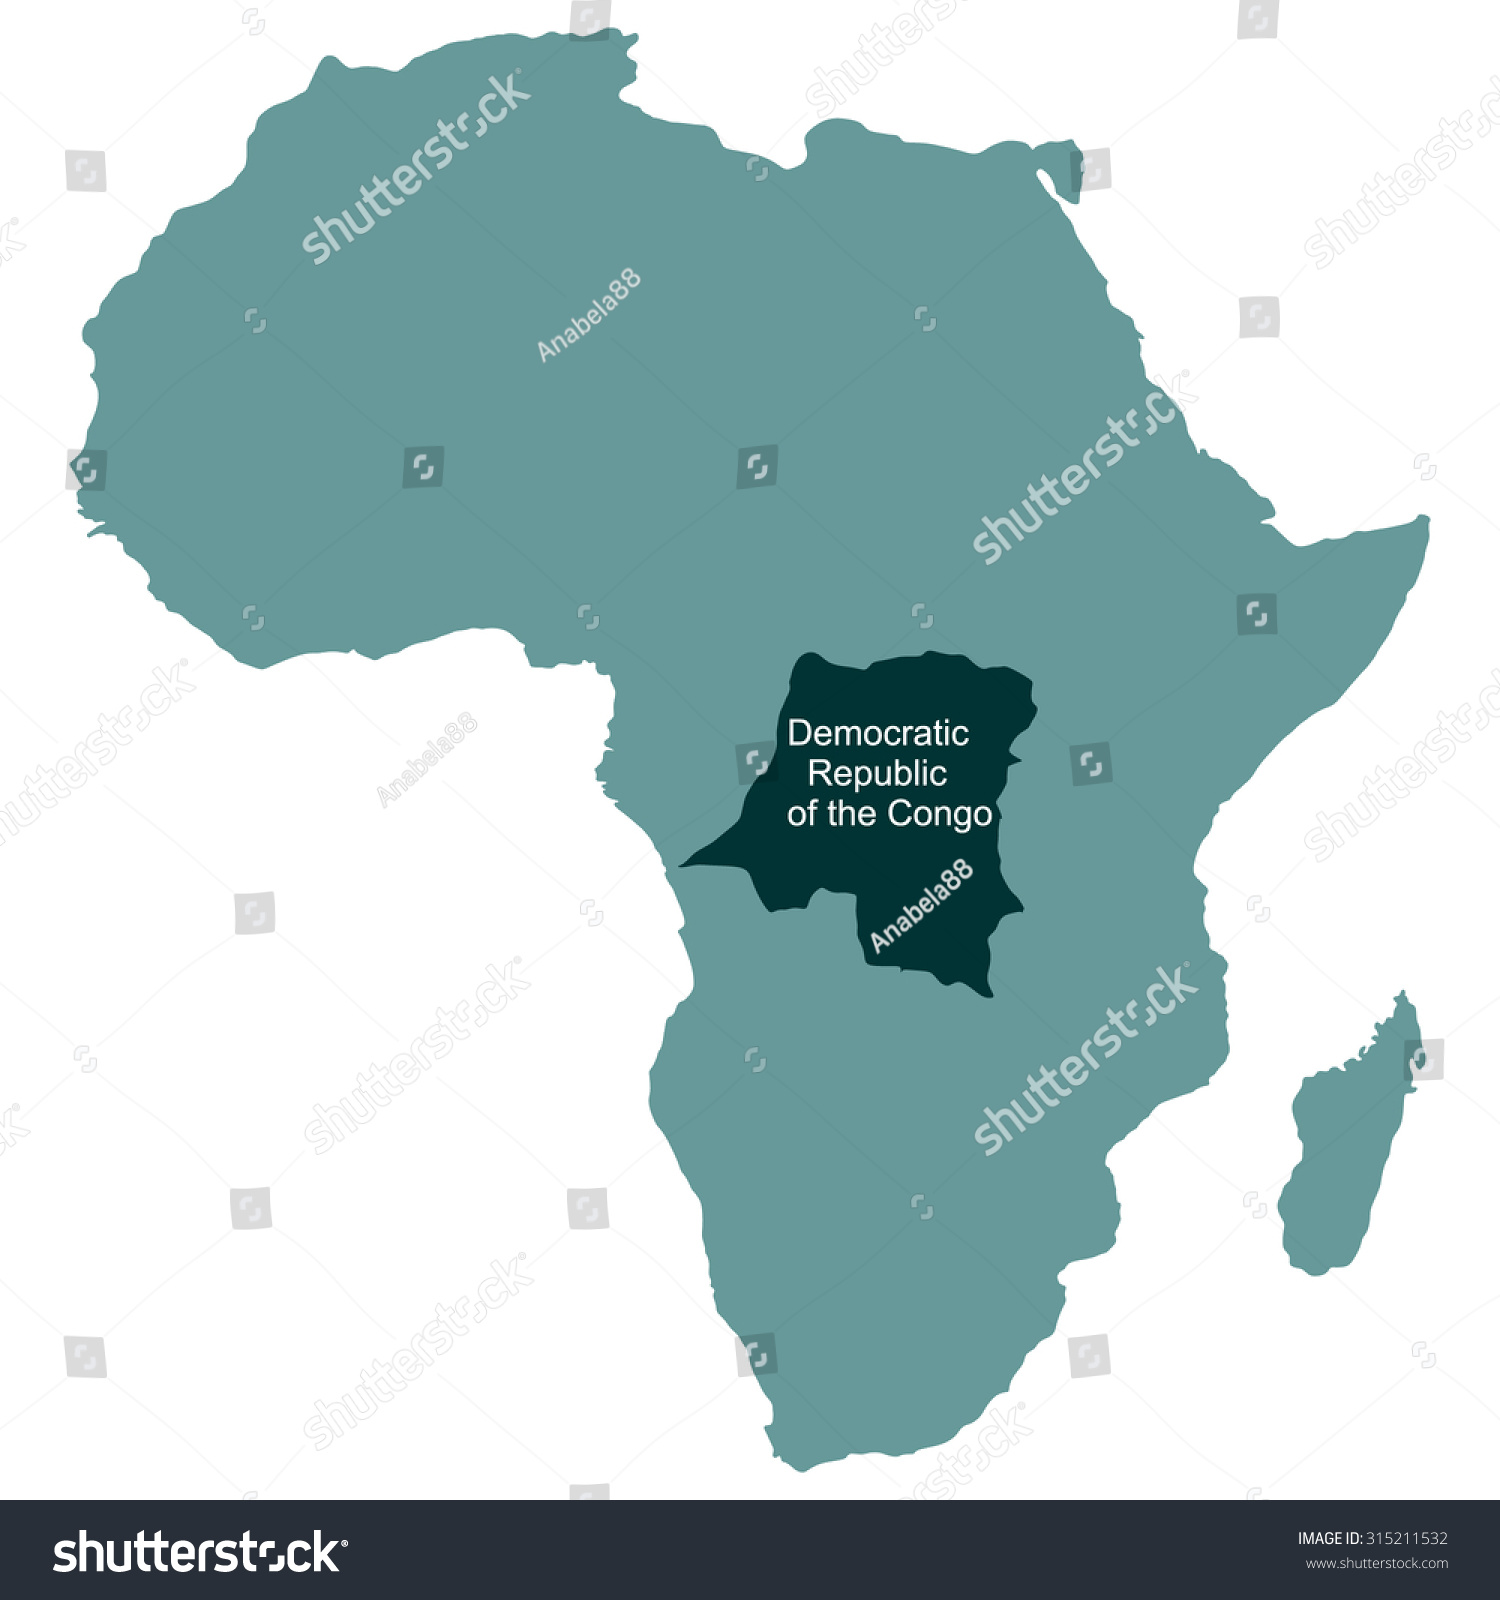 Congo On Africa Map.Map Africa Democratic Republic Congo Stock Vector Royalty Free